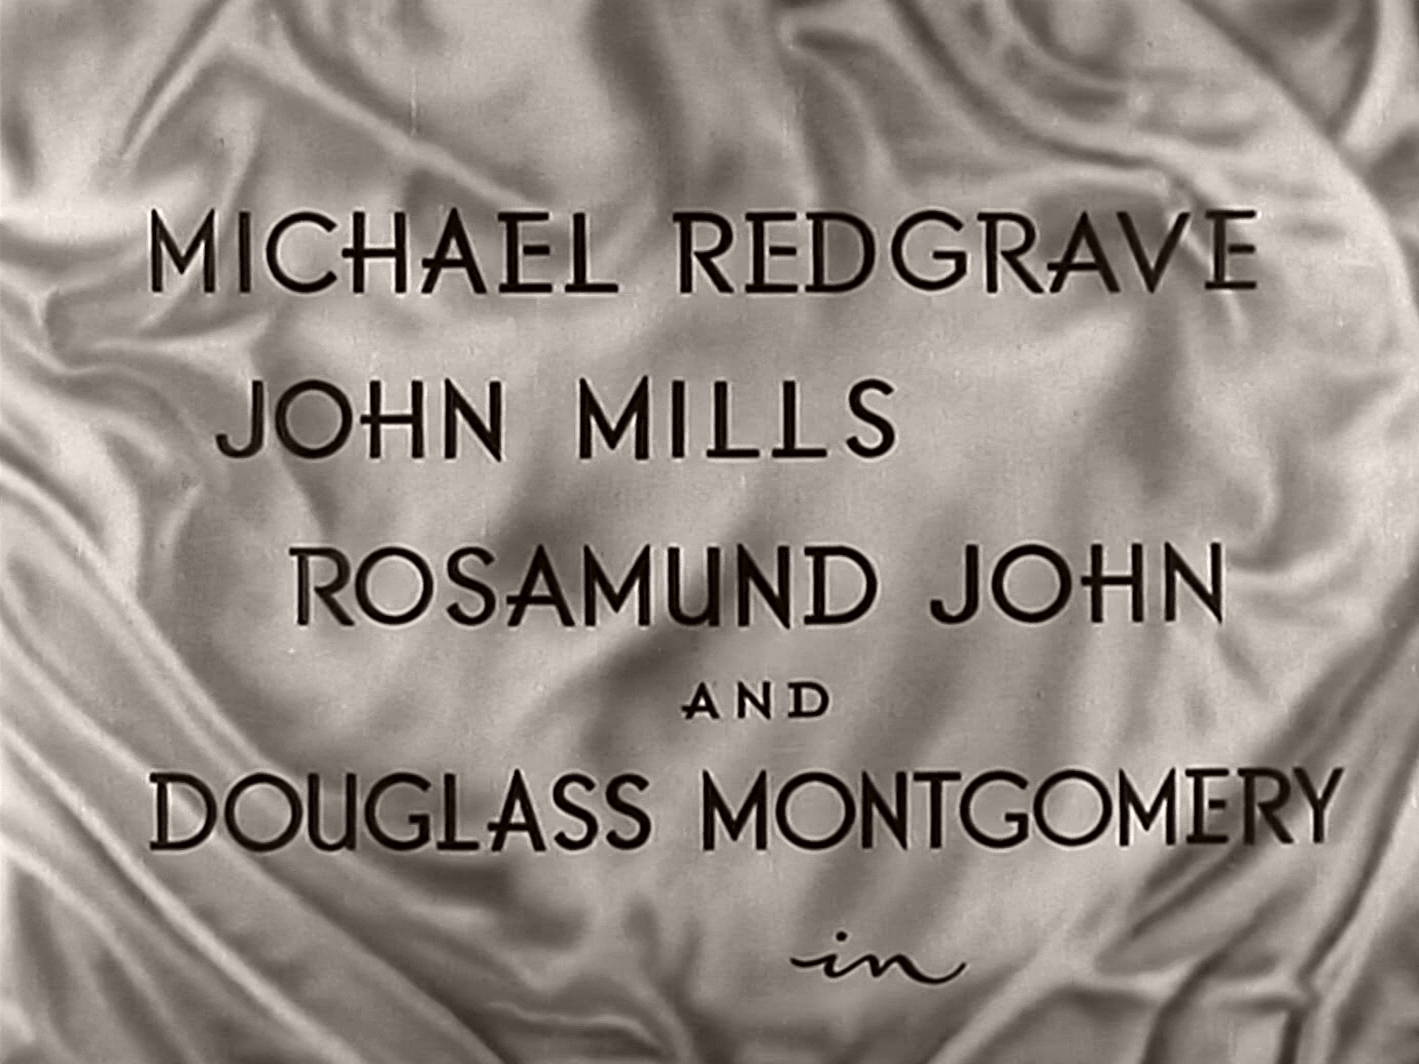 Main title from The Way to the Stars (1945) (3). Michael Redgrave, John Mills, Rosamund John and Douglass Montgomery in